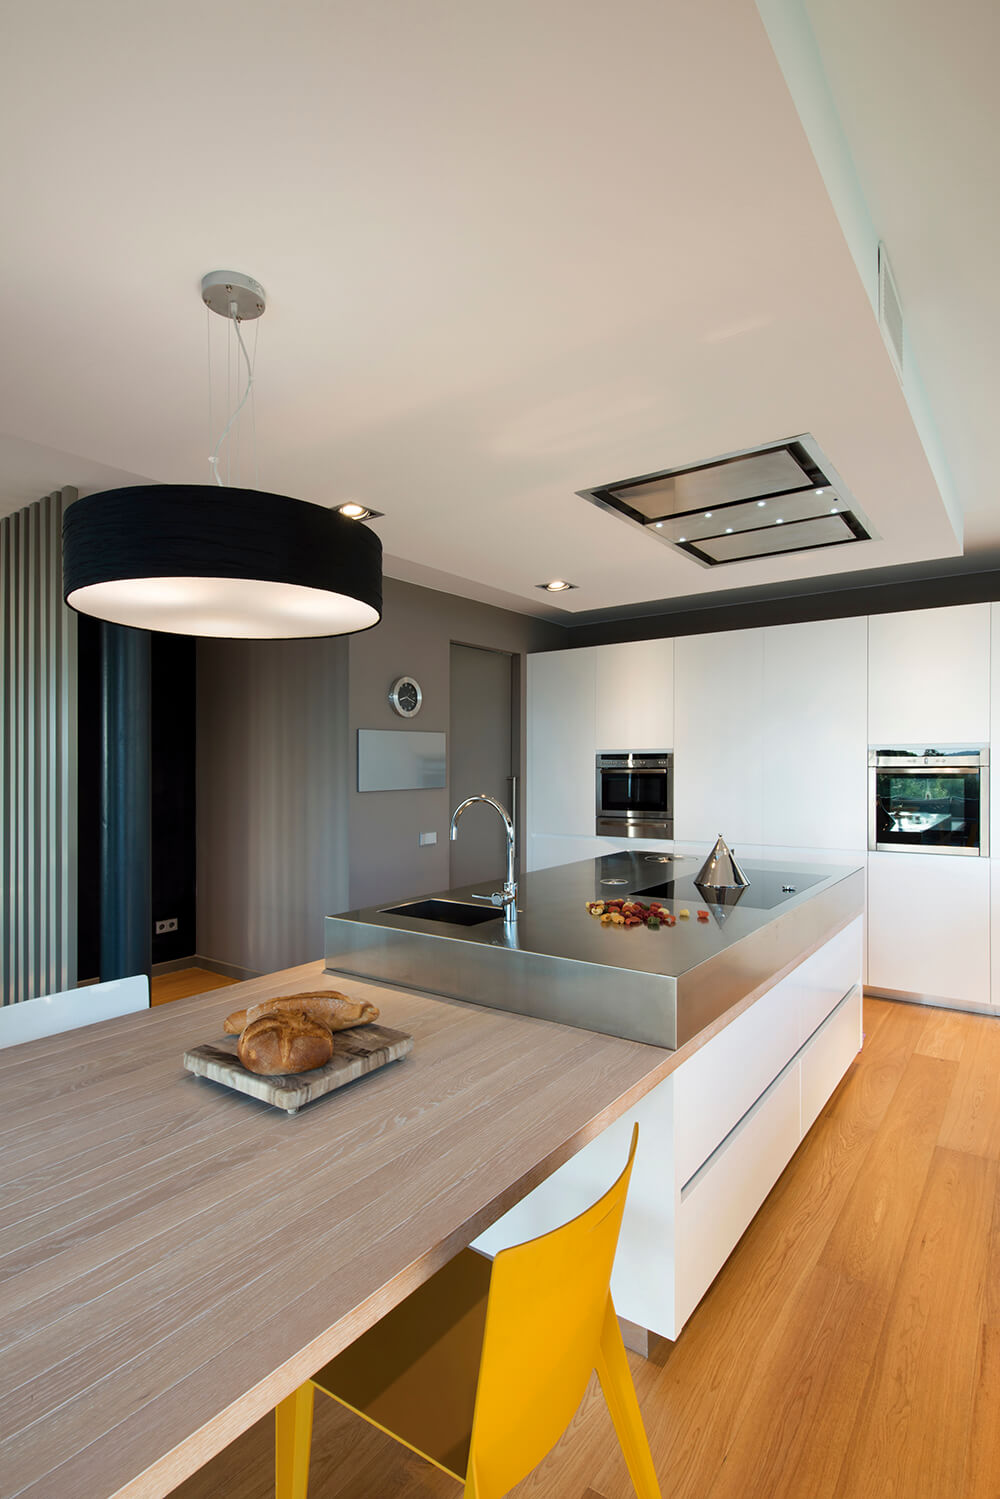 A closer view of the island and dine-in extension shows the different materials that exist in the kitchen. The floor consists of rich wood grain, the cabinetry a sleek white surface, while the top of the island transitions from a faded wood grain to a chrome surface